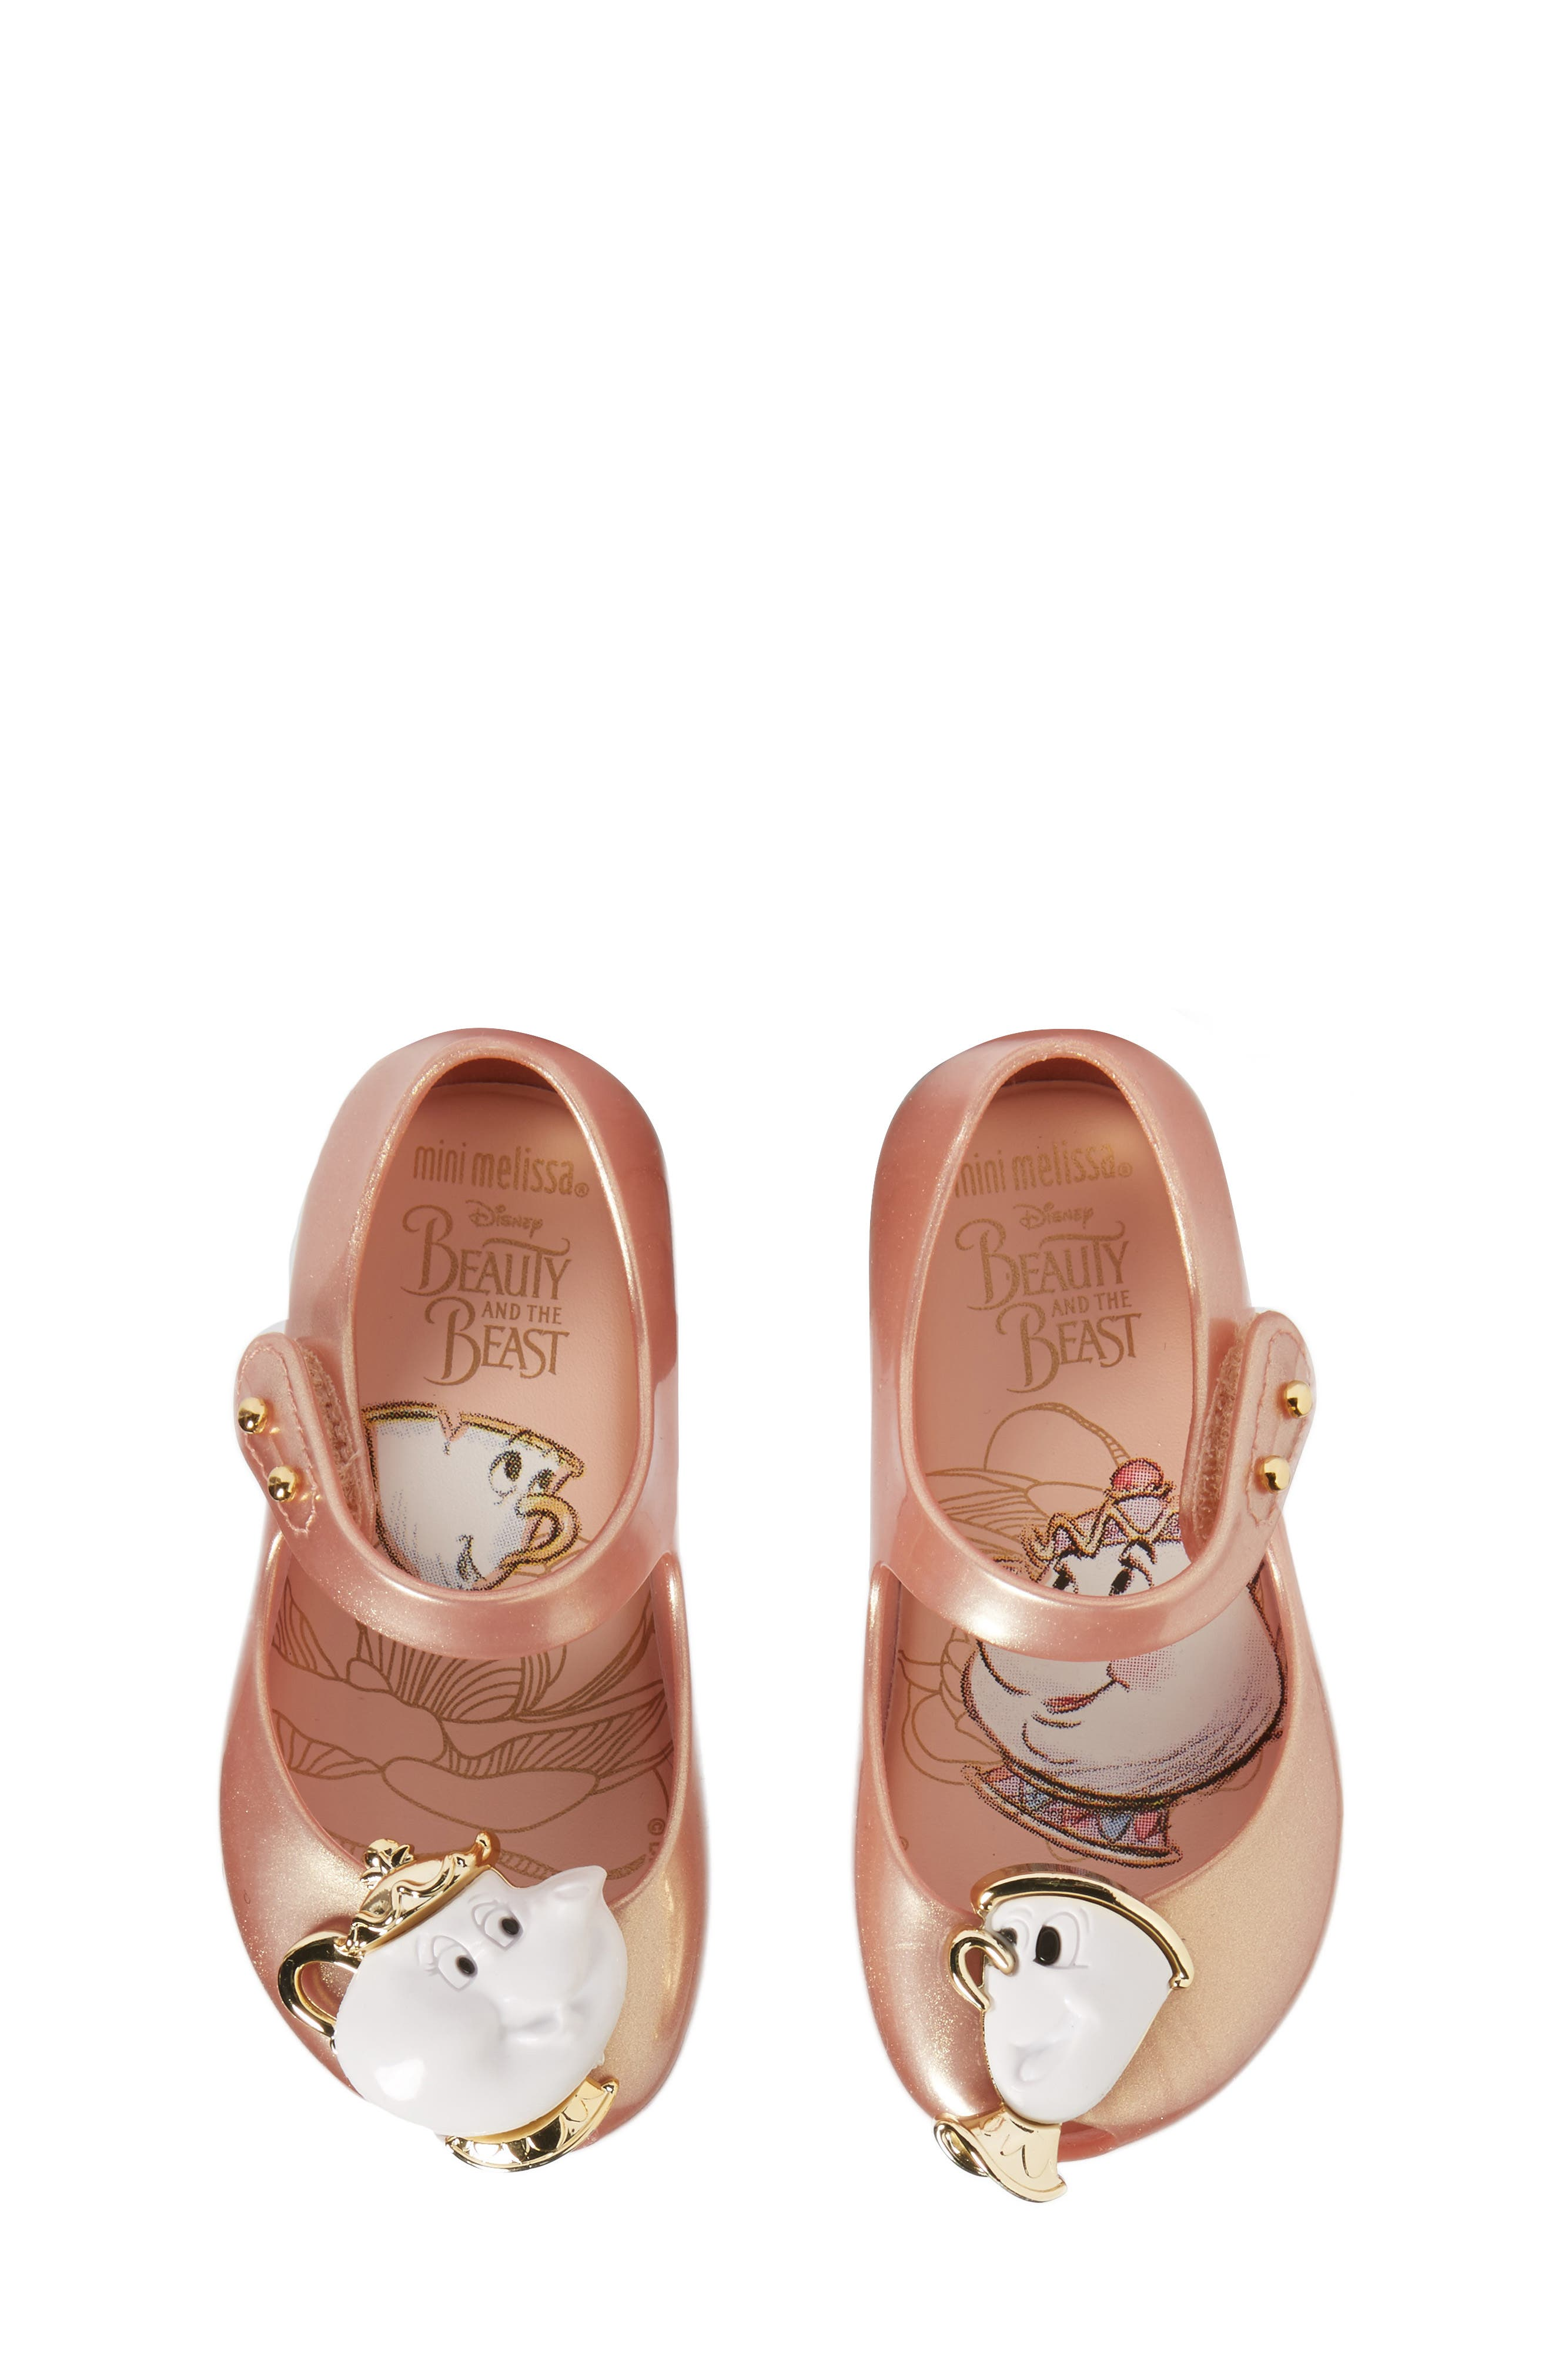 Mini Melissa Ultragirl Beauty & The Beast Mary Jane Flat (Walker & Toddler)